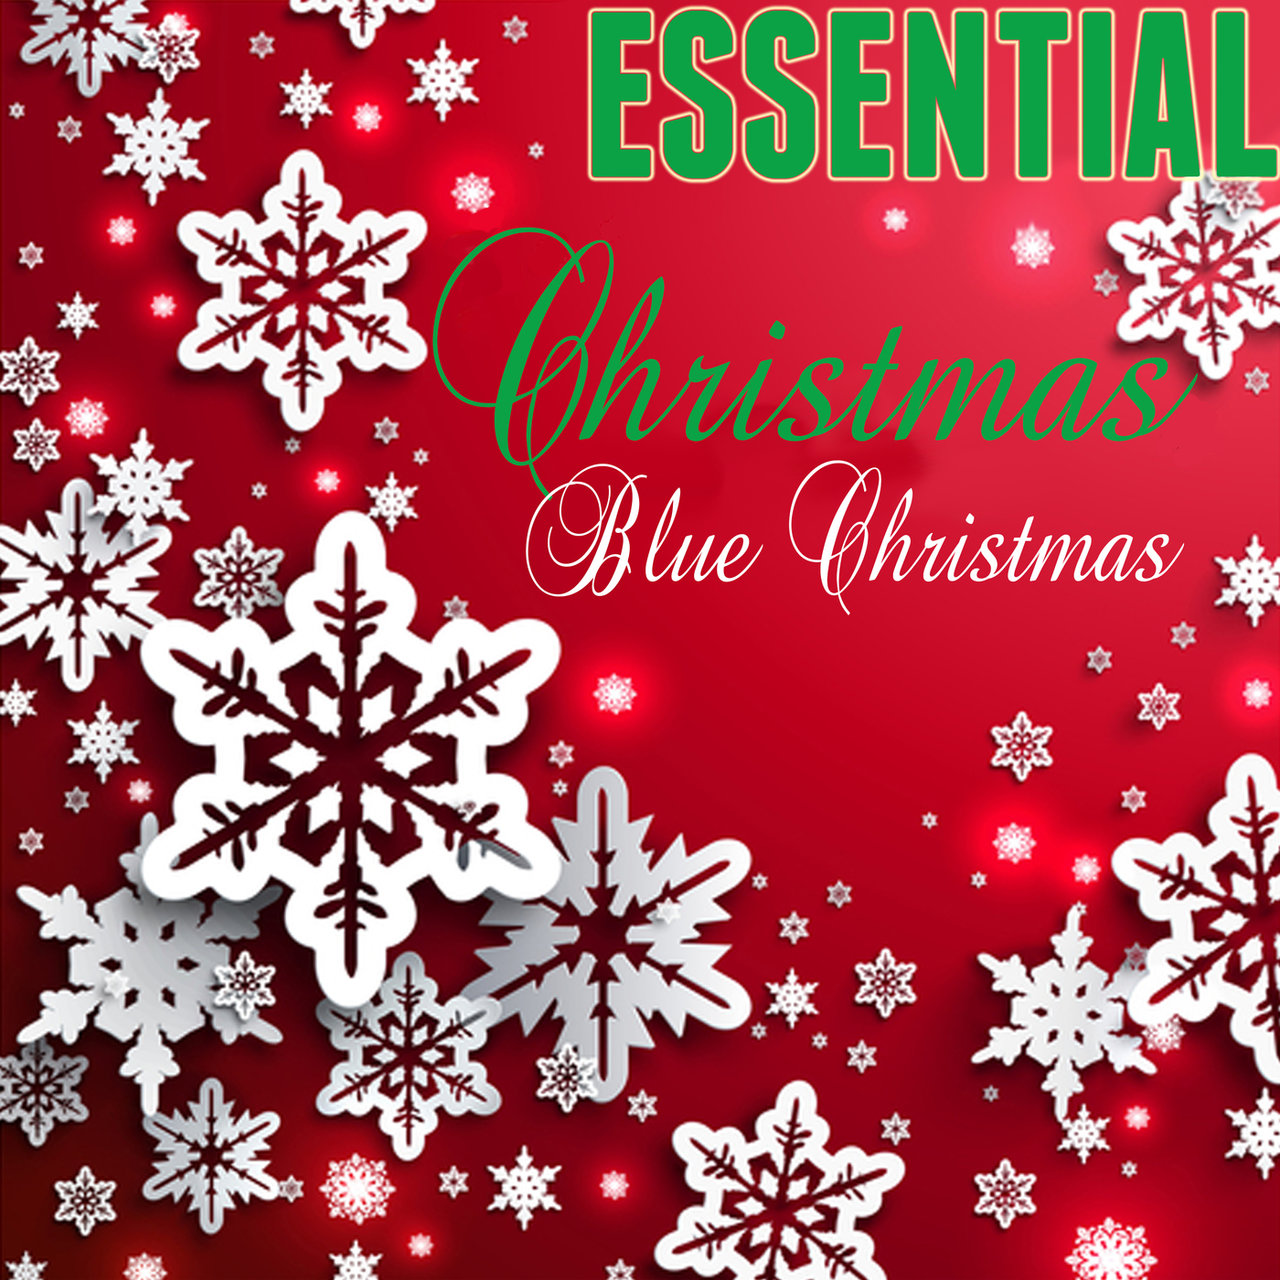 Essential Christmas: Blue Christmas